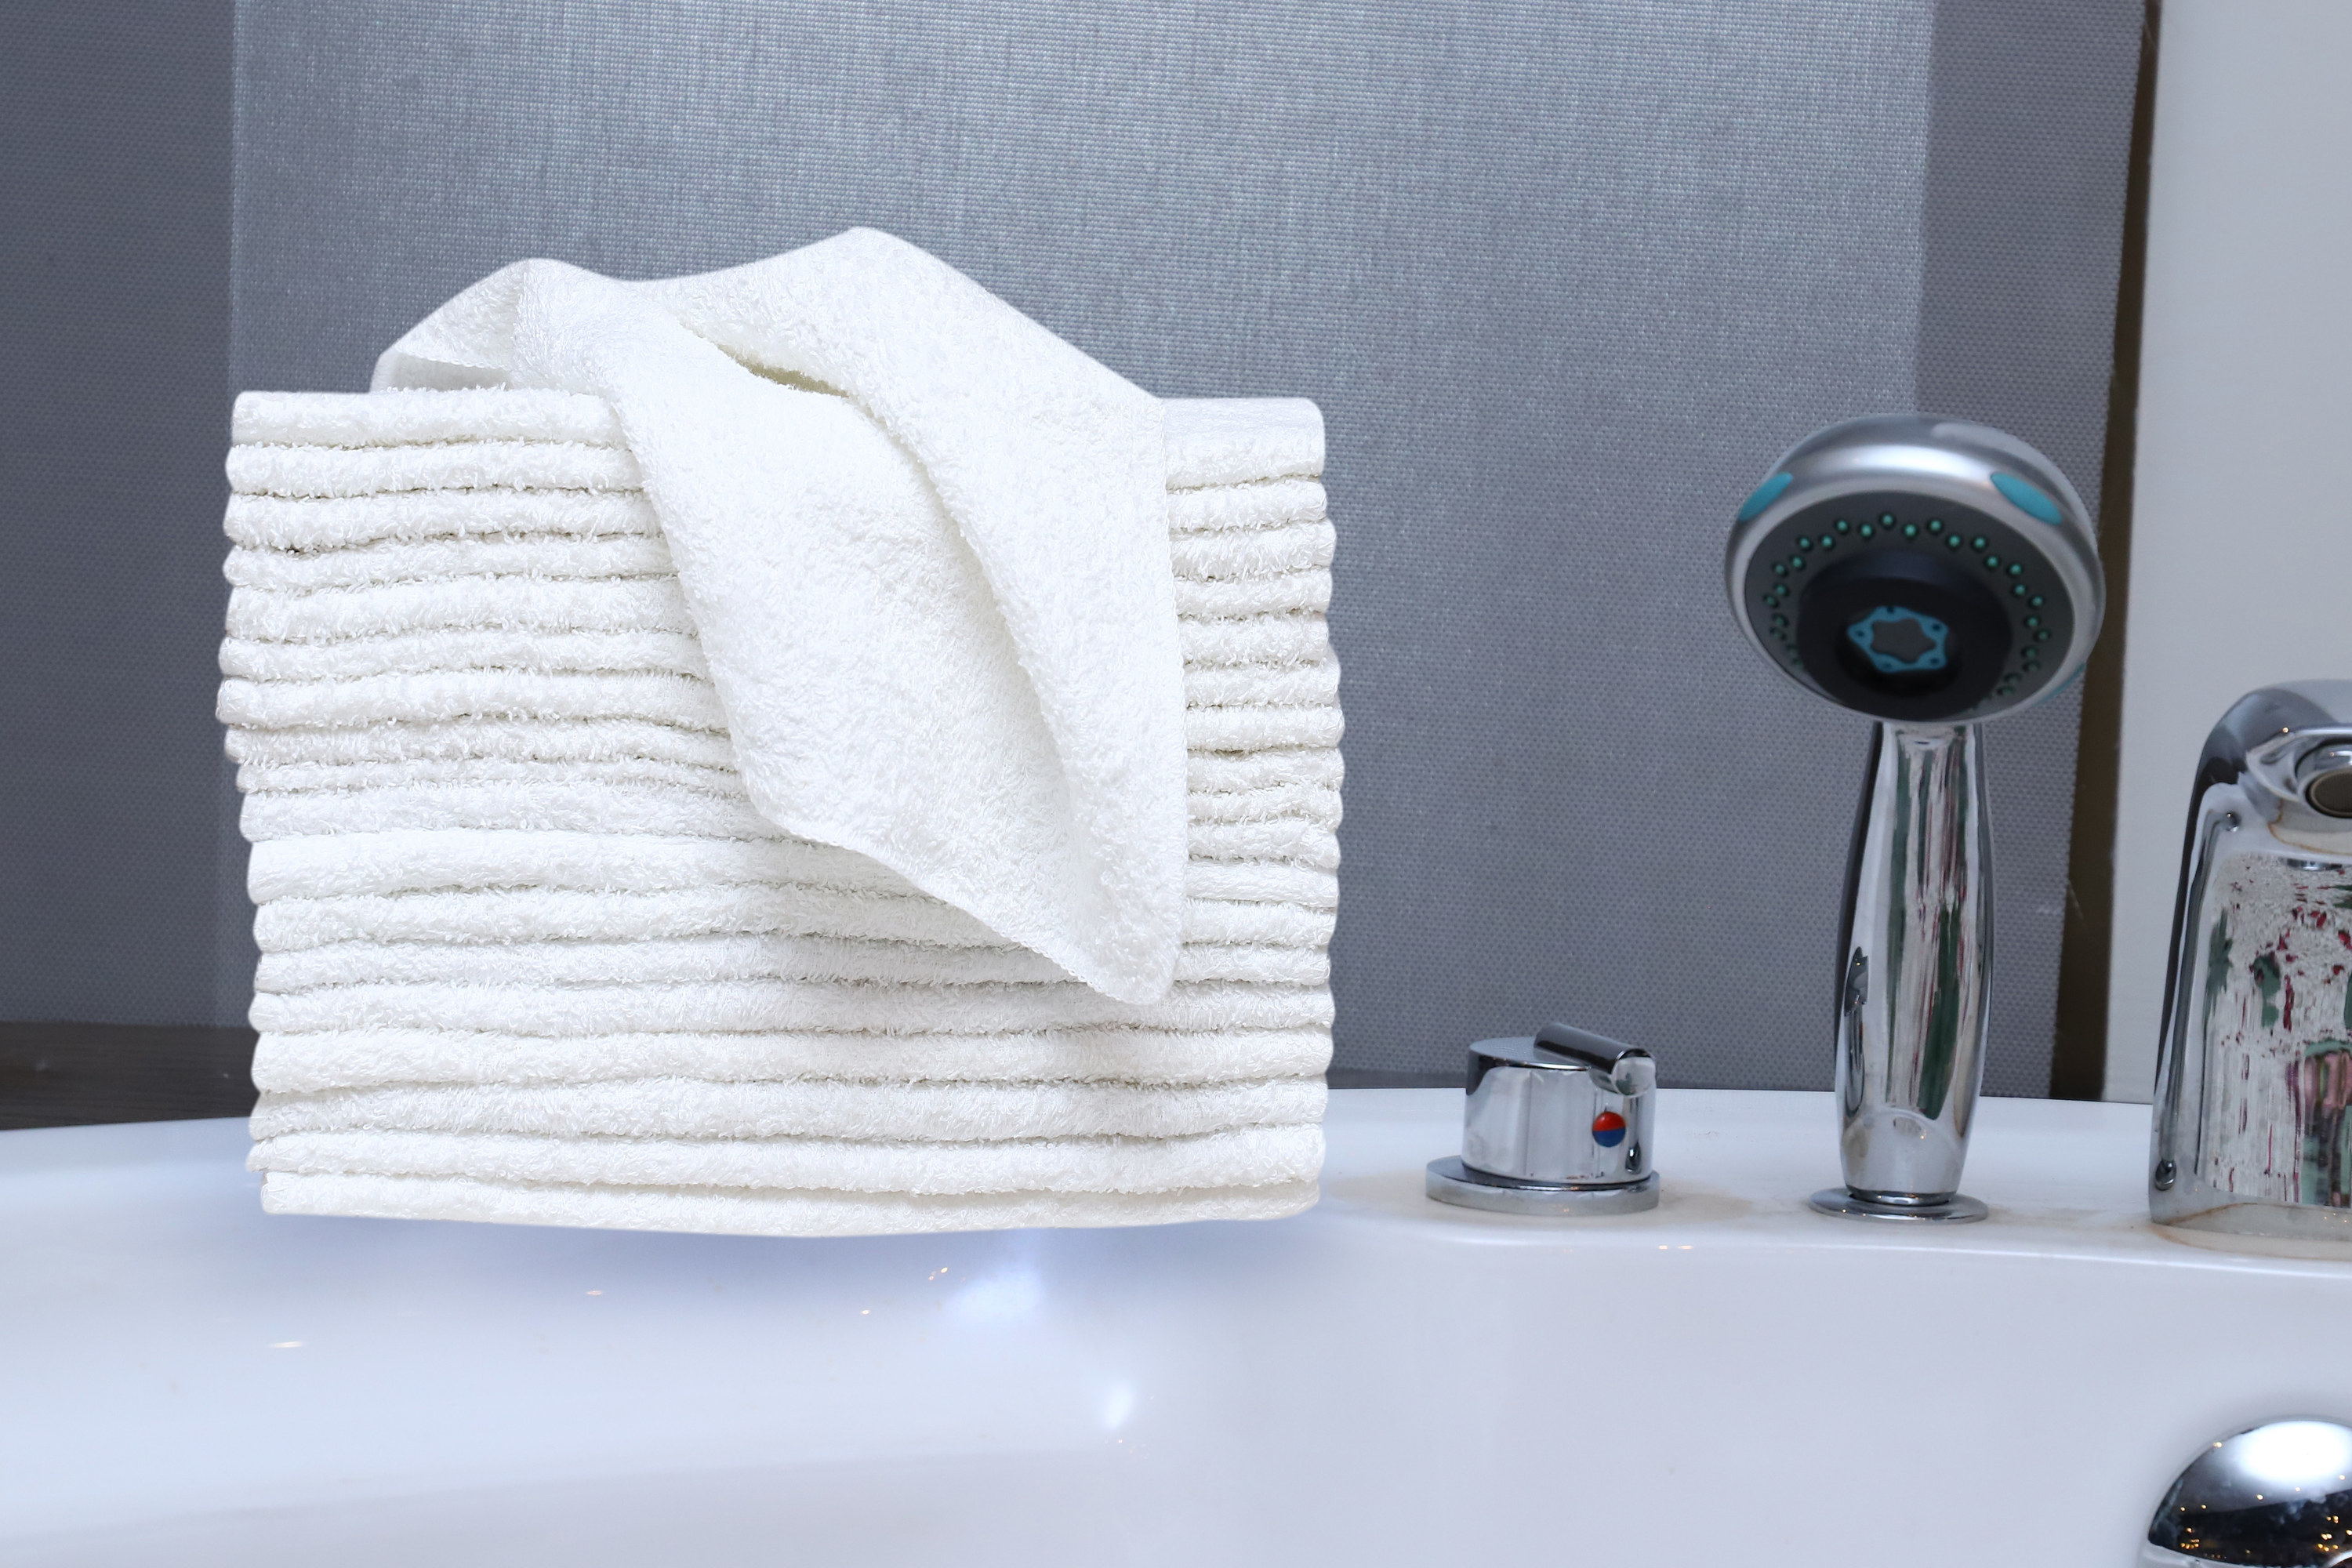 A pack of 36 washcloths